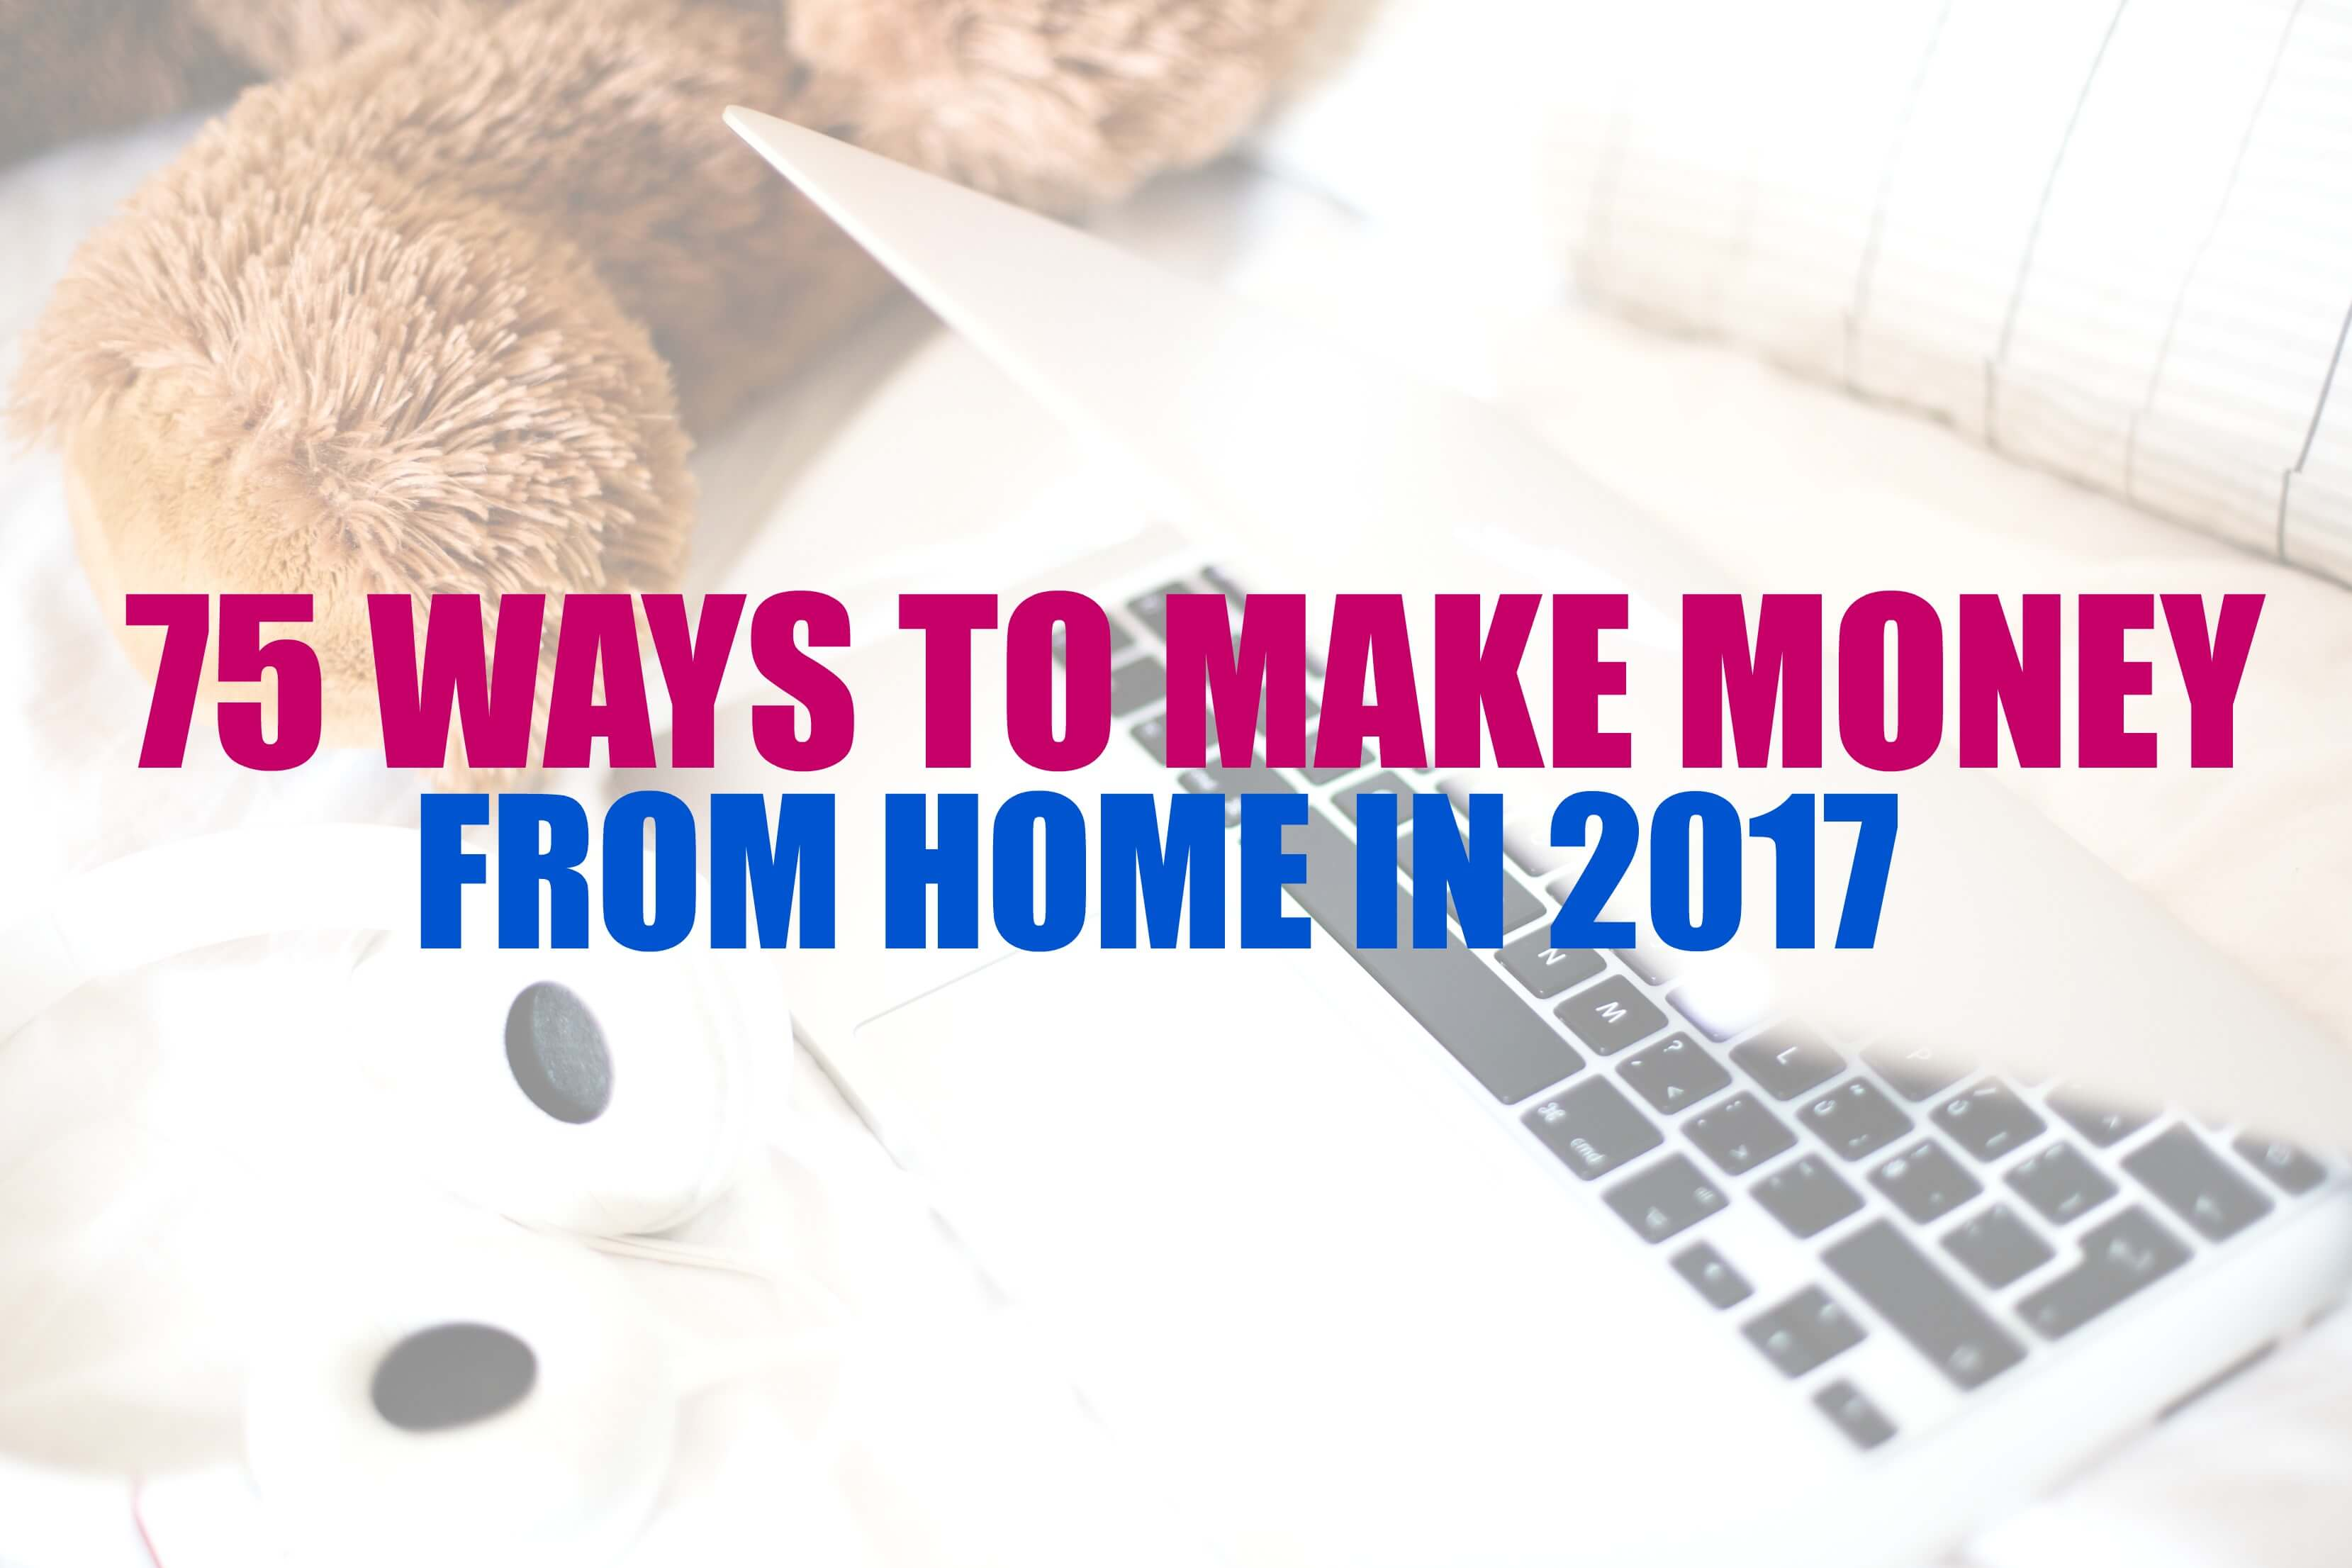 75 Ways to Earn Money From Home in 2017